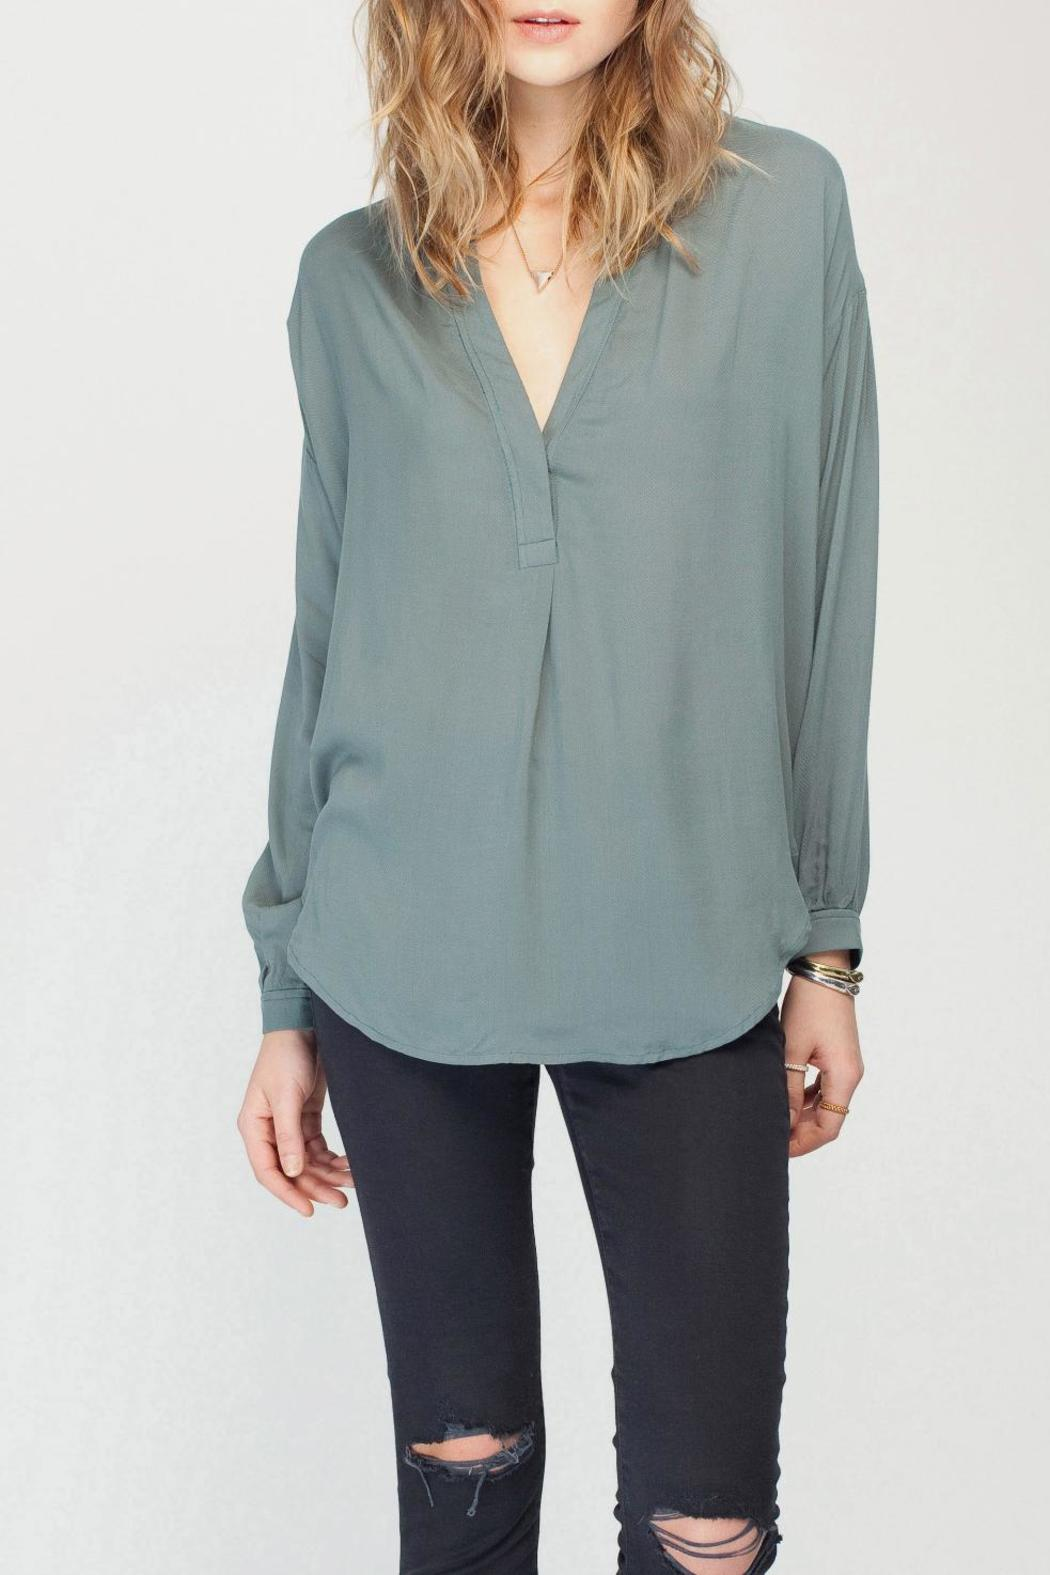 Gentle Fawn Solid Balsam Blouse - Main Image